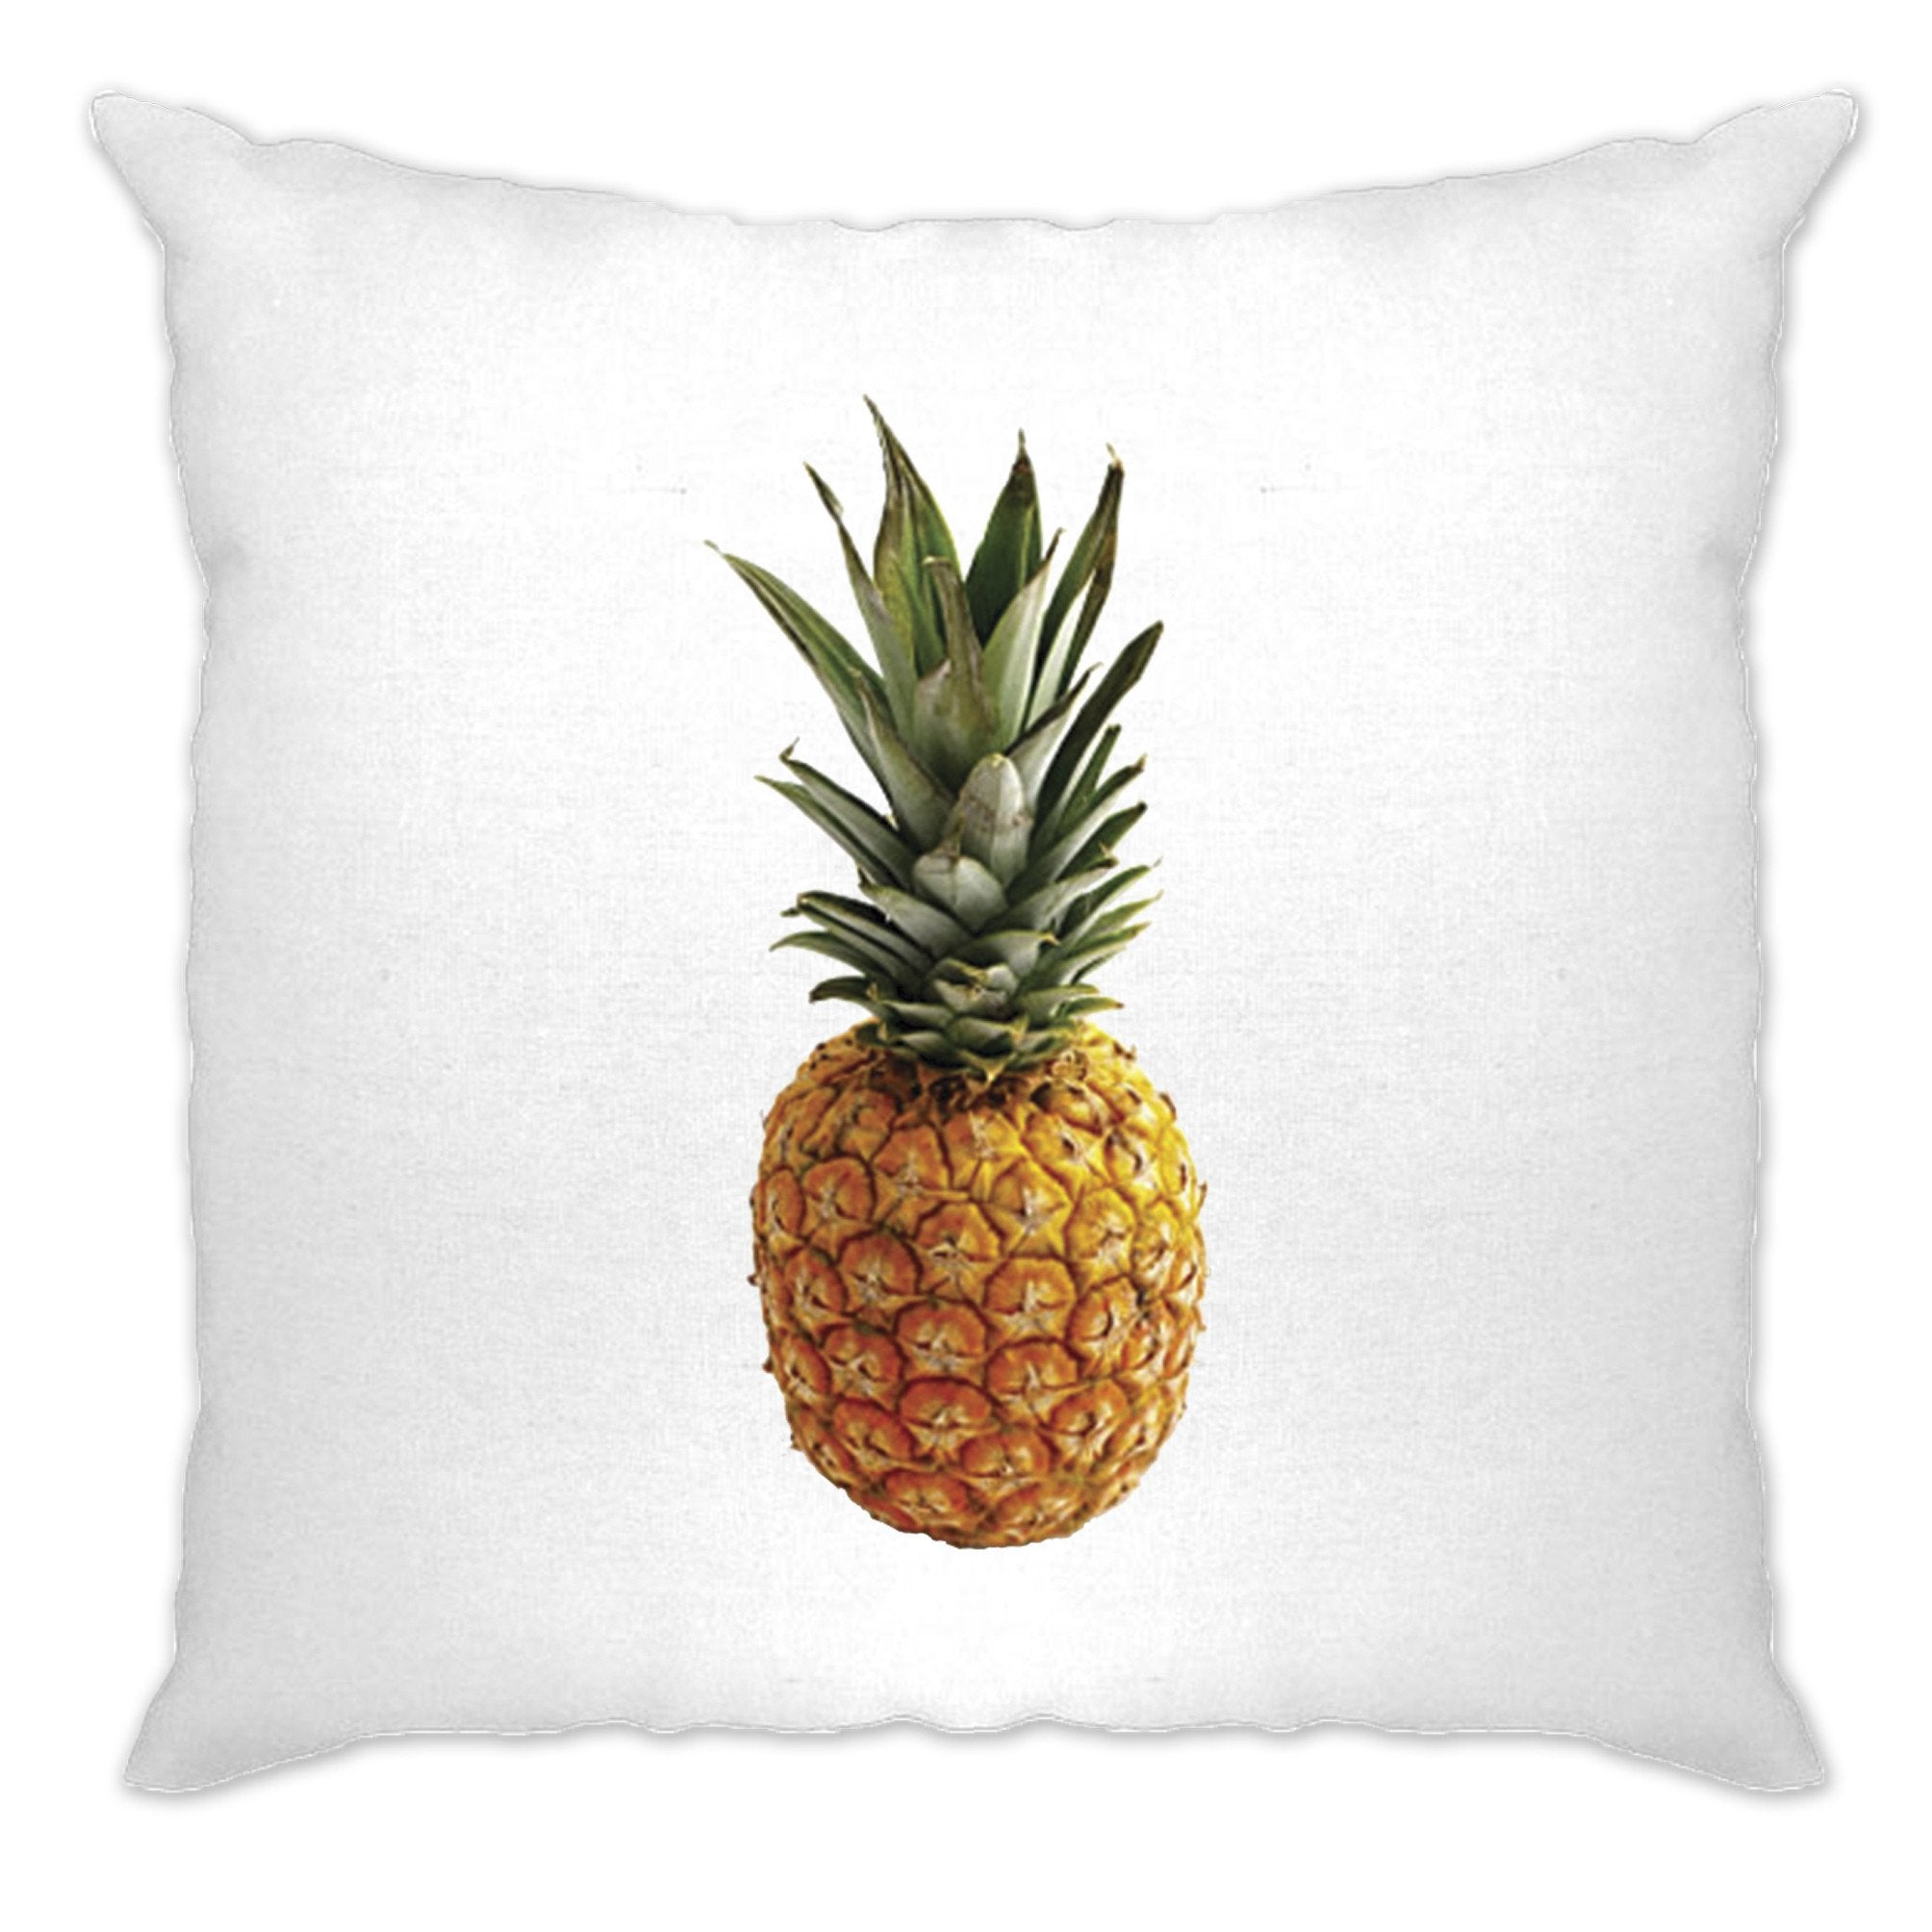 Trendy Summer Cushion Cover Pineapple Fruit Photograph